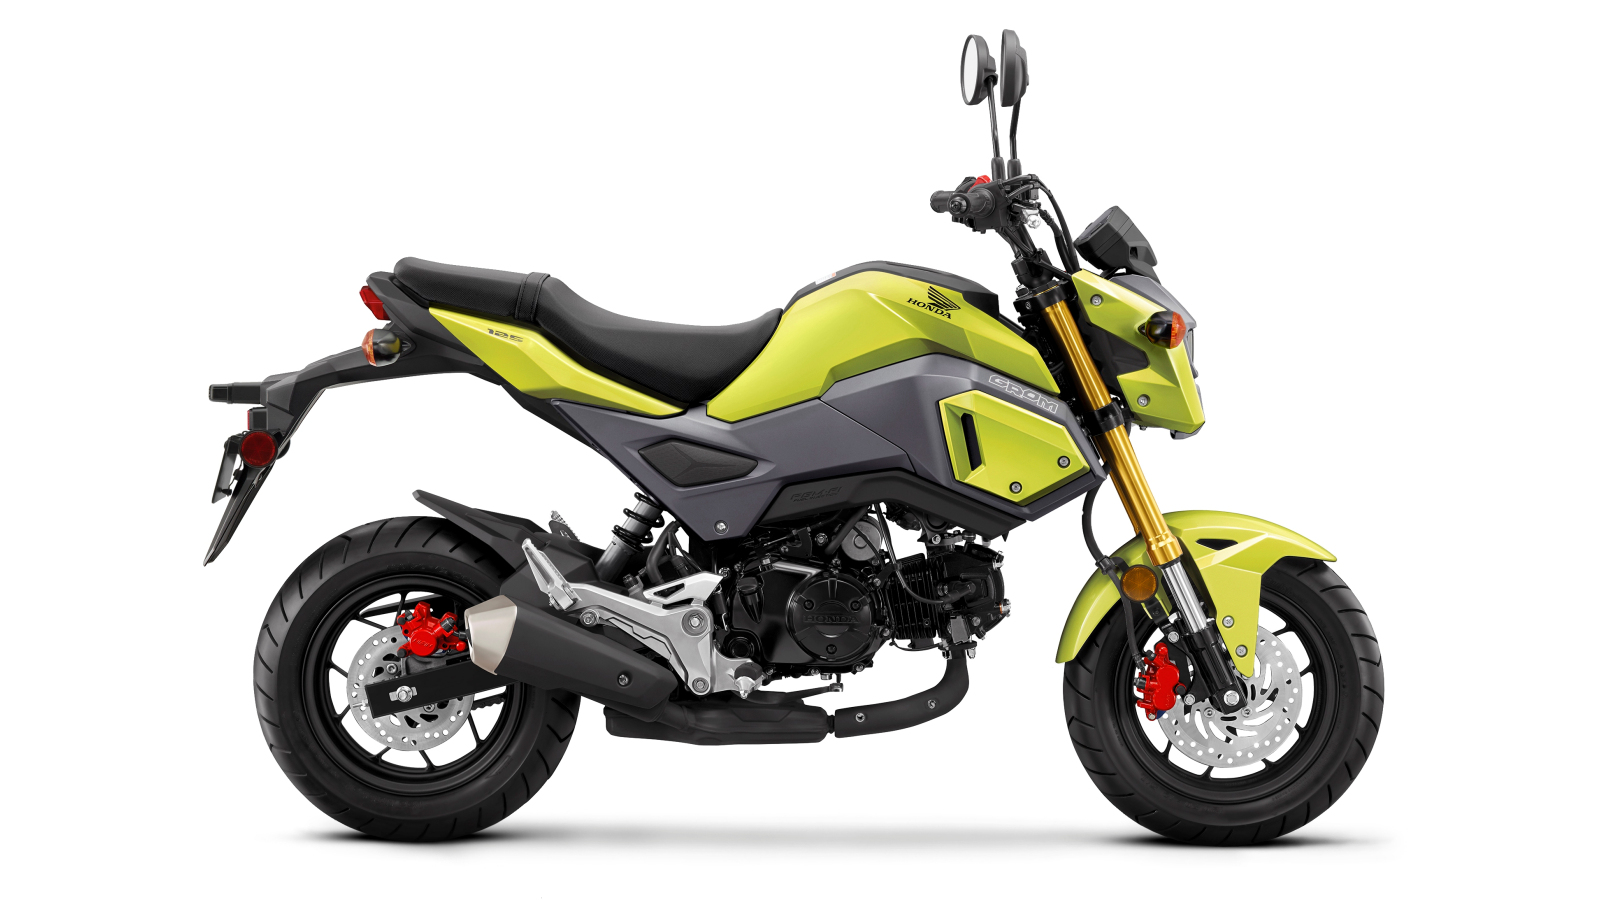 2017 honda motorcycle pictures  2017 - 2018 Honda Grom Review - Top Speed